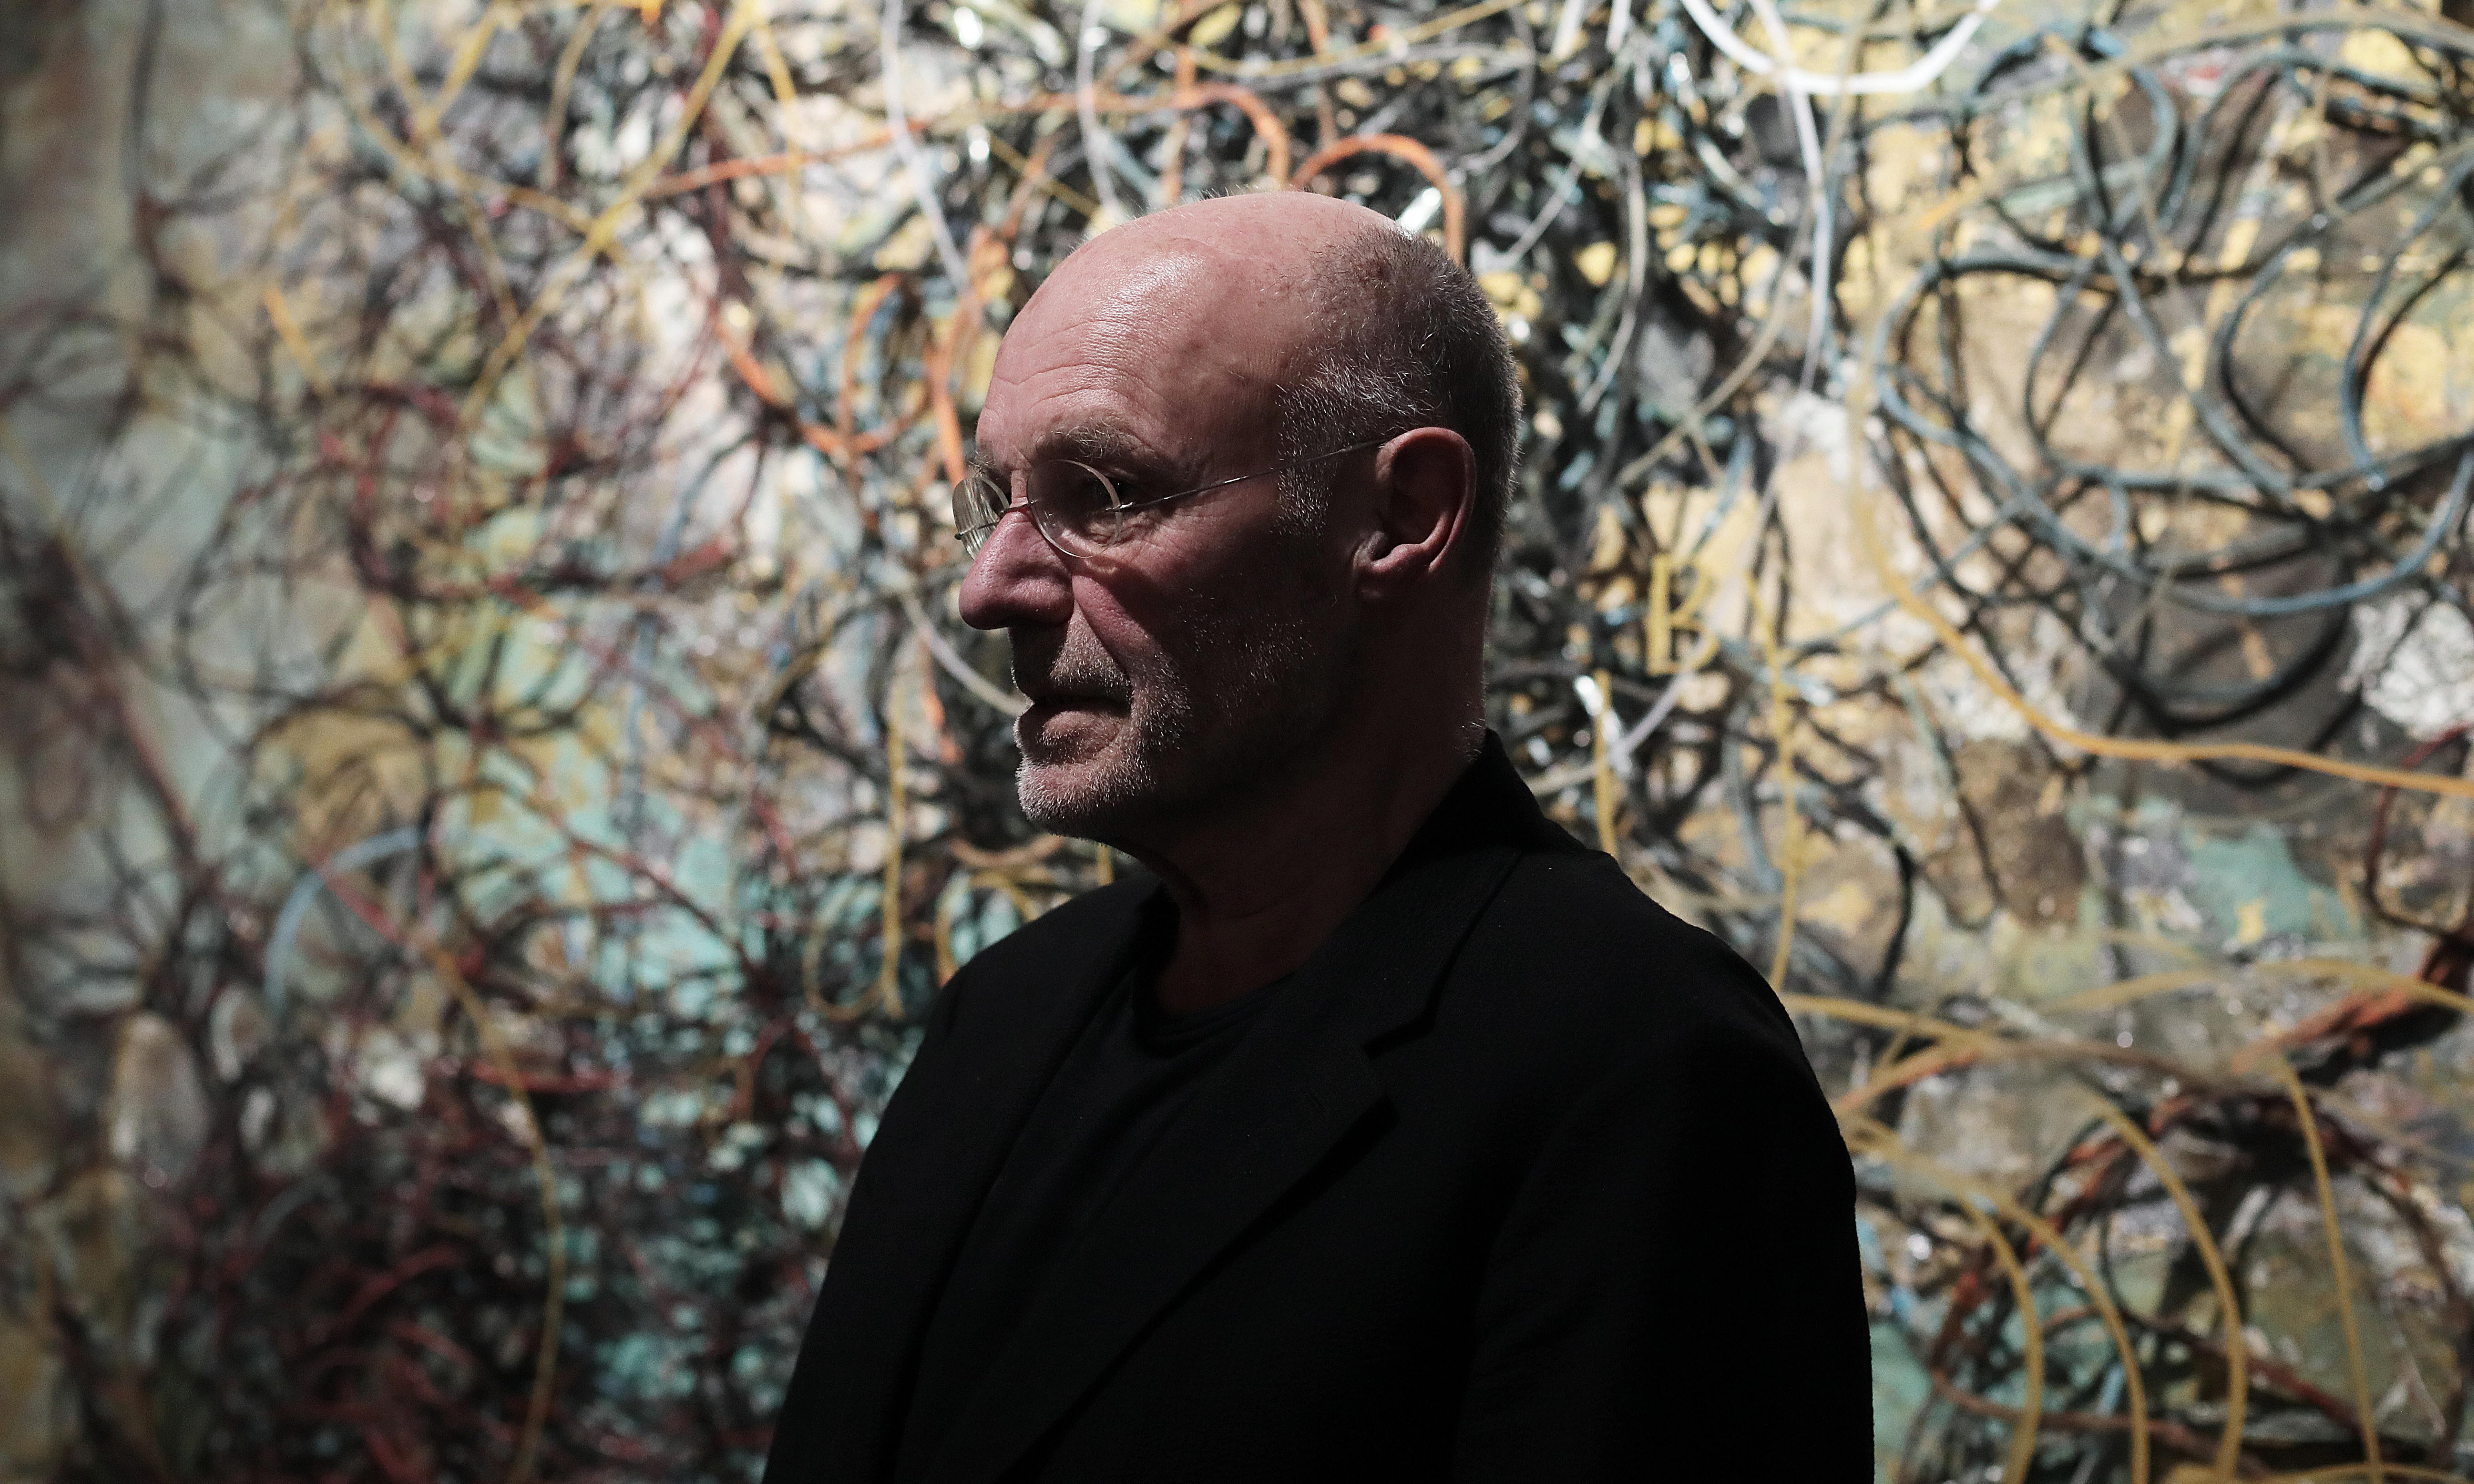 Anselm Kiefer: 'When I make a truly great painting, then I feel real'